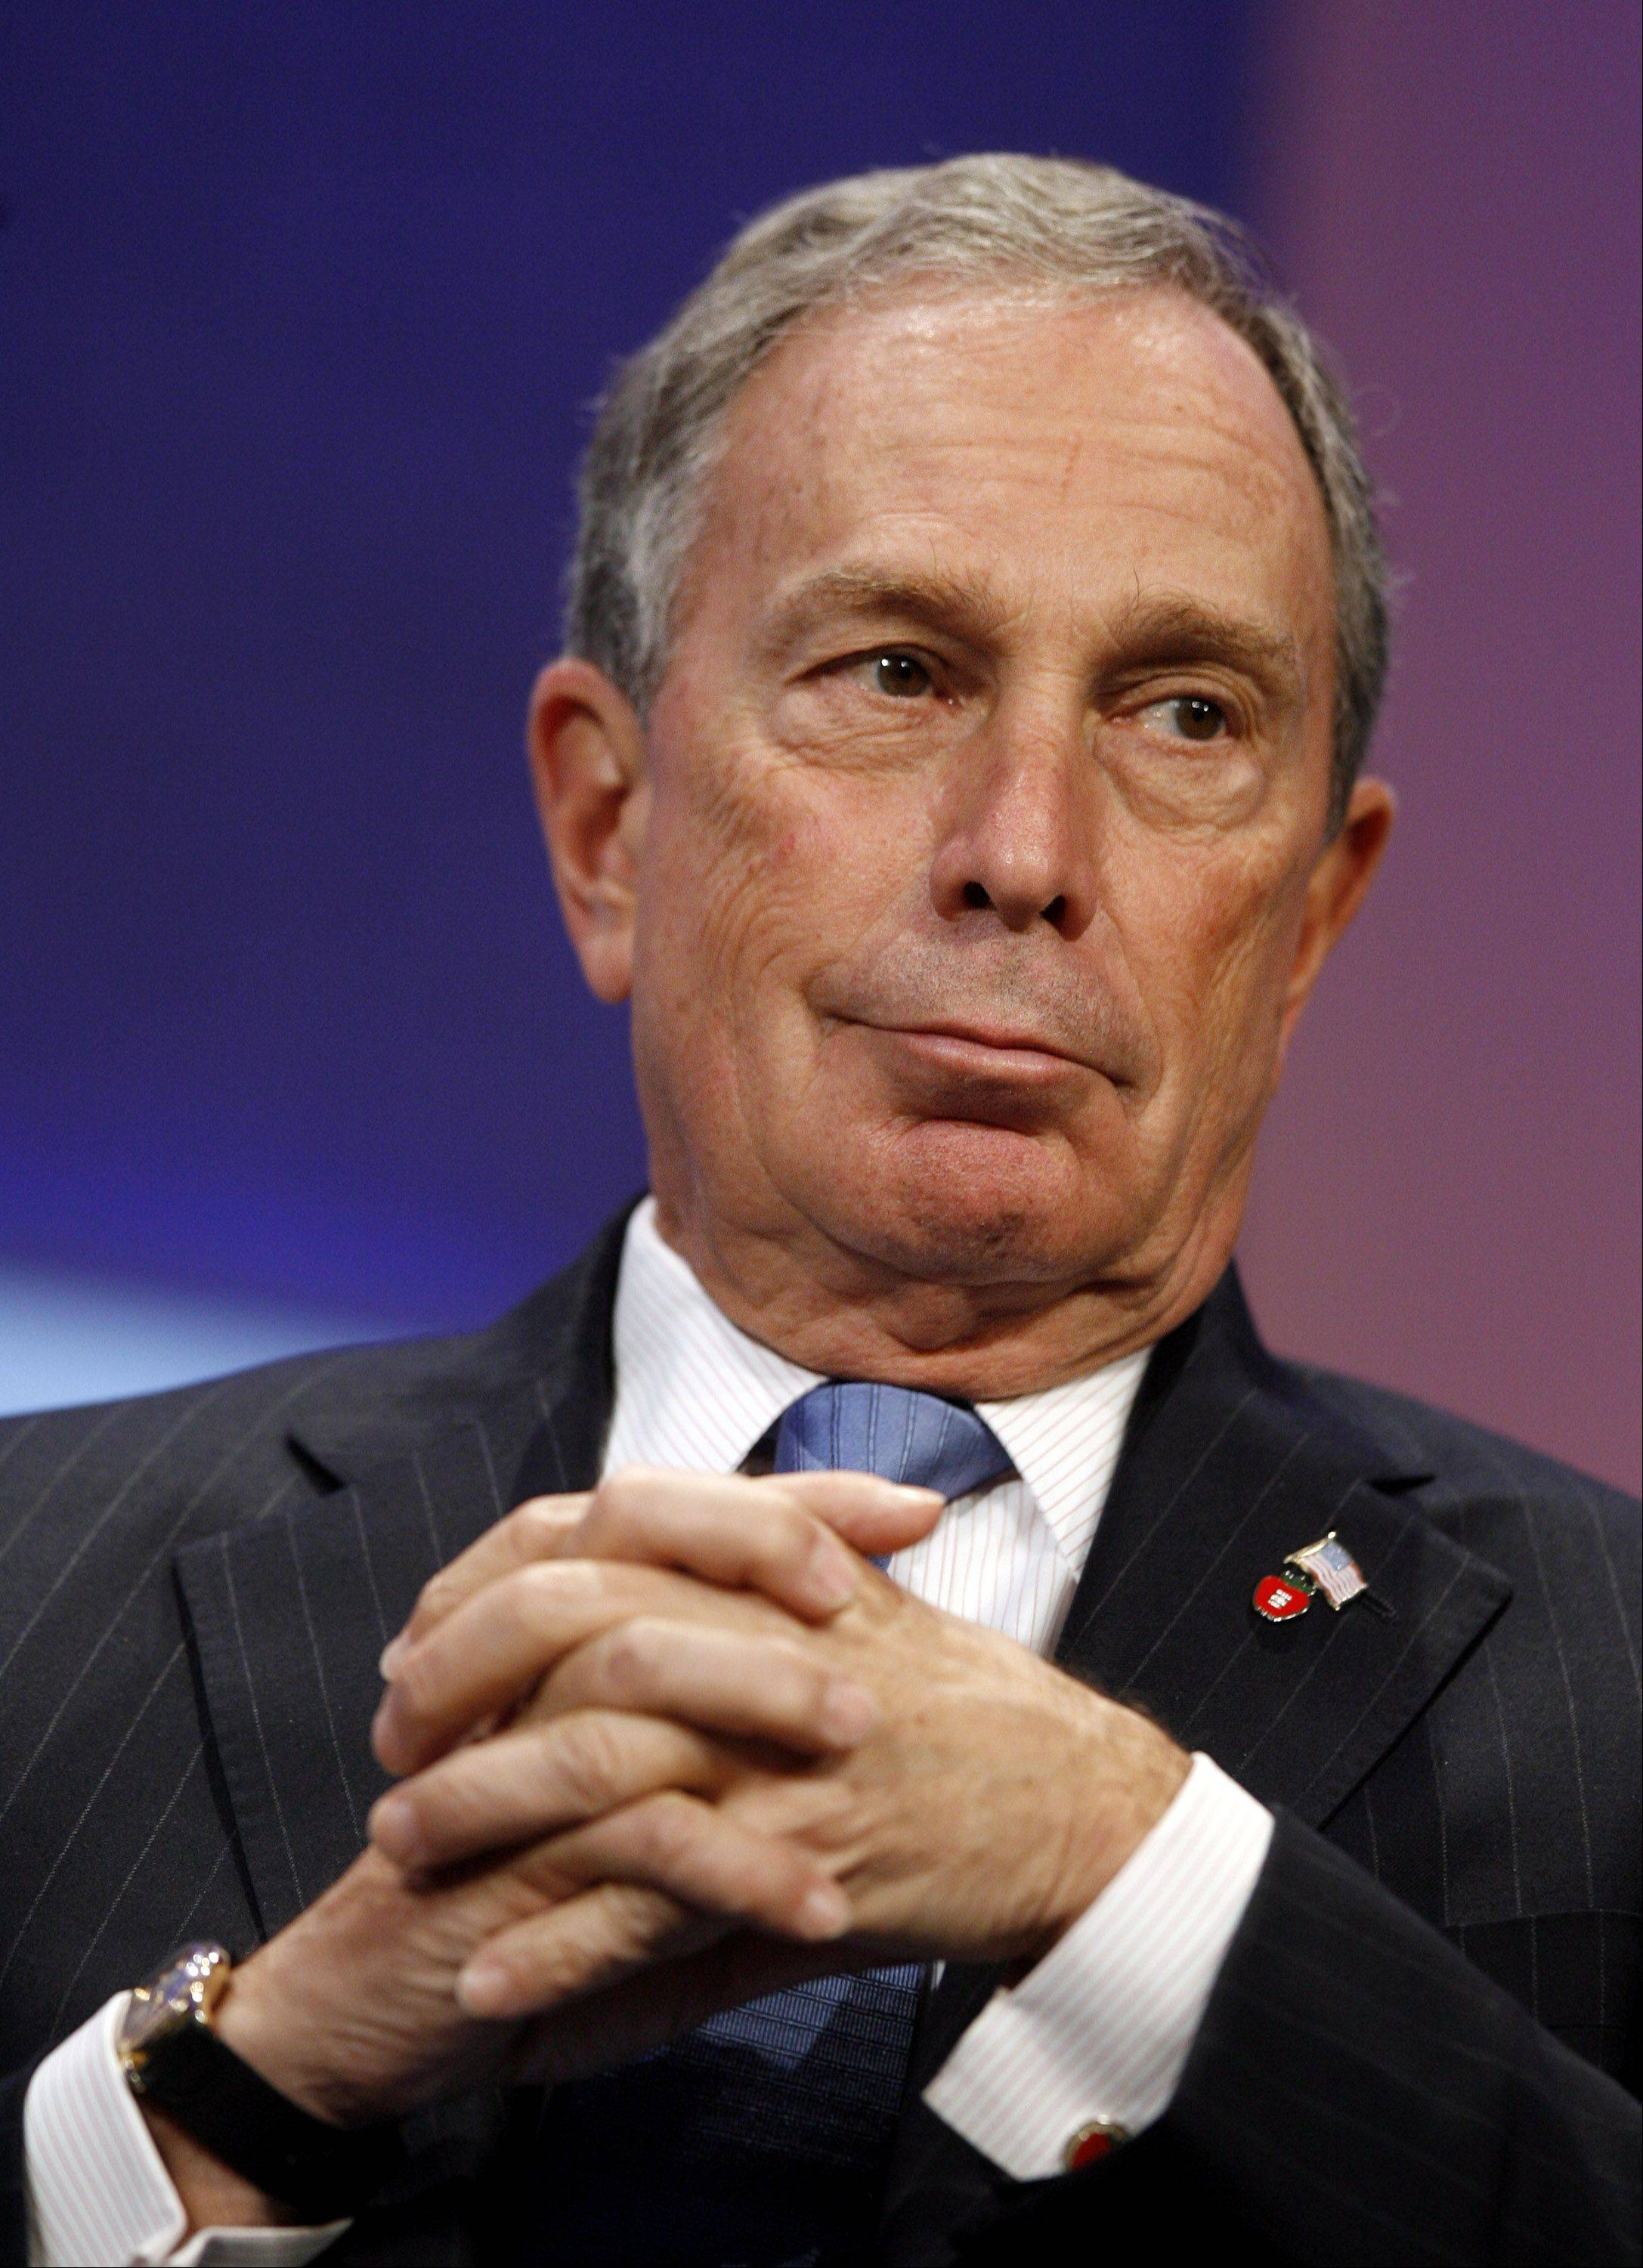 New York Mayor Michael Bloomberg has presided over all the annual Sept. 11 commemoration ceremonies in New York and has kept the events free of politics and focused on the victims and their families.